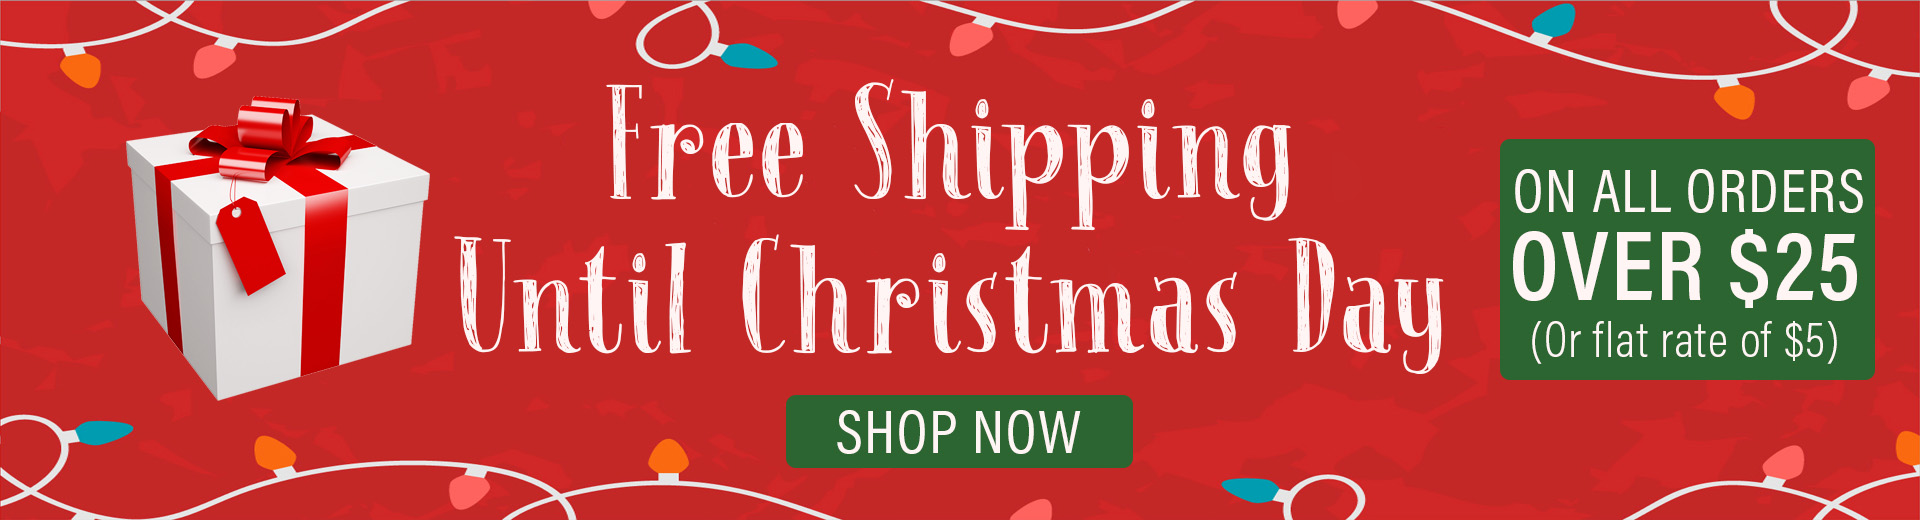 Free Shipping on all orders until Christmas day MyStripperCloset.com